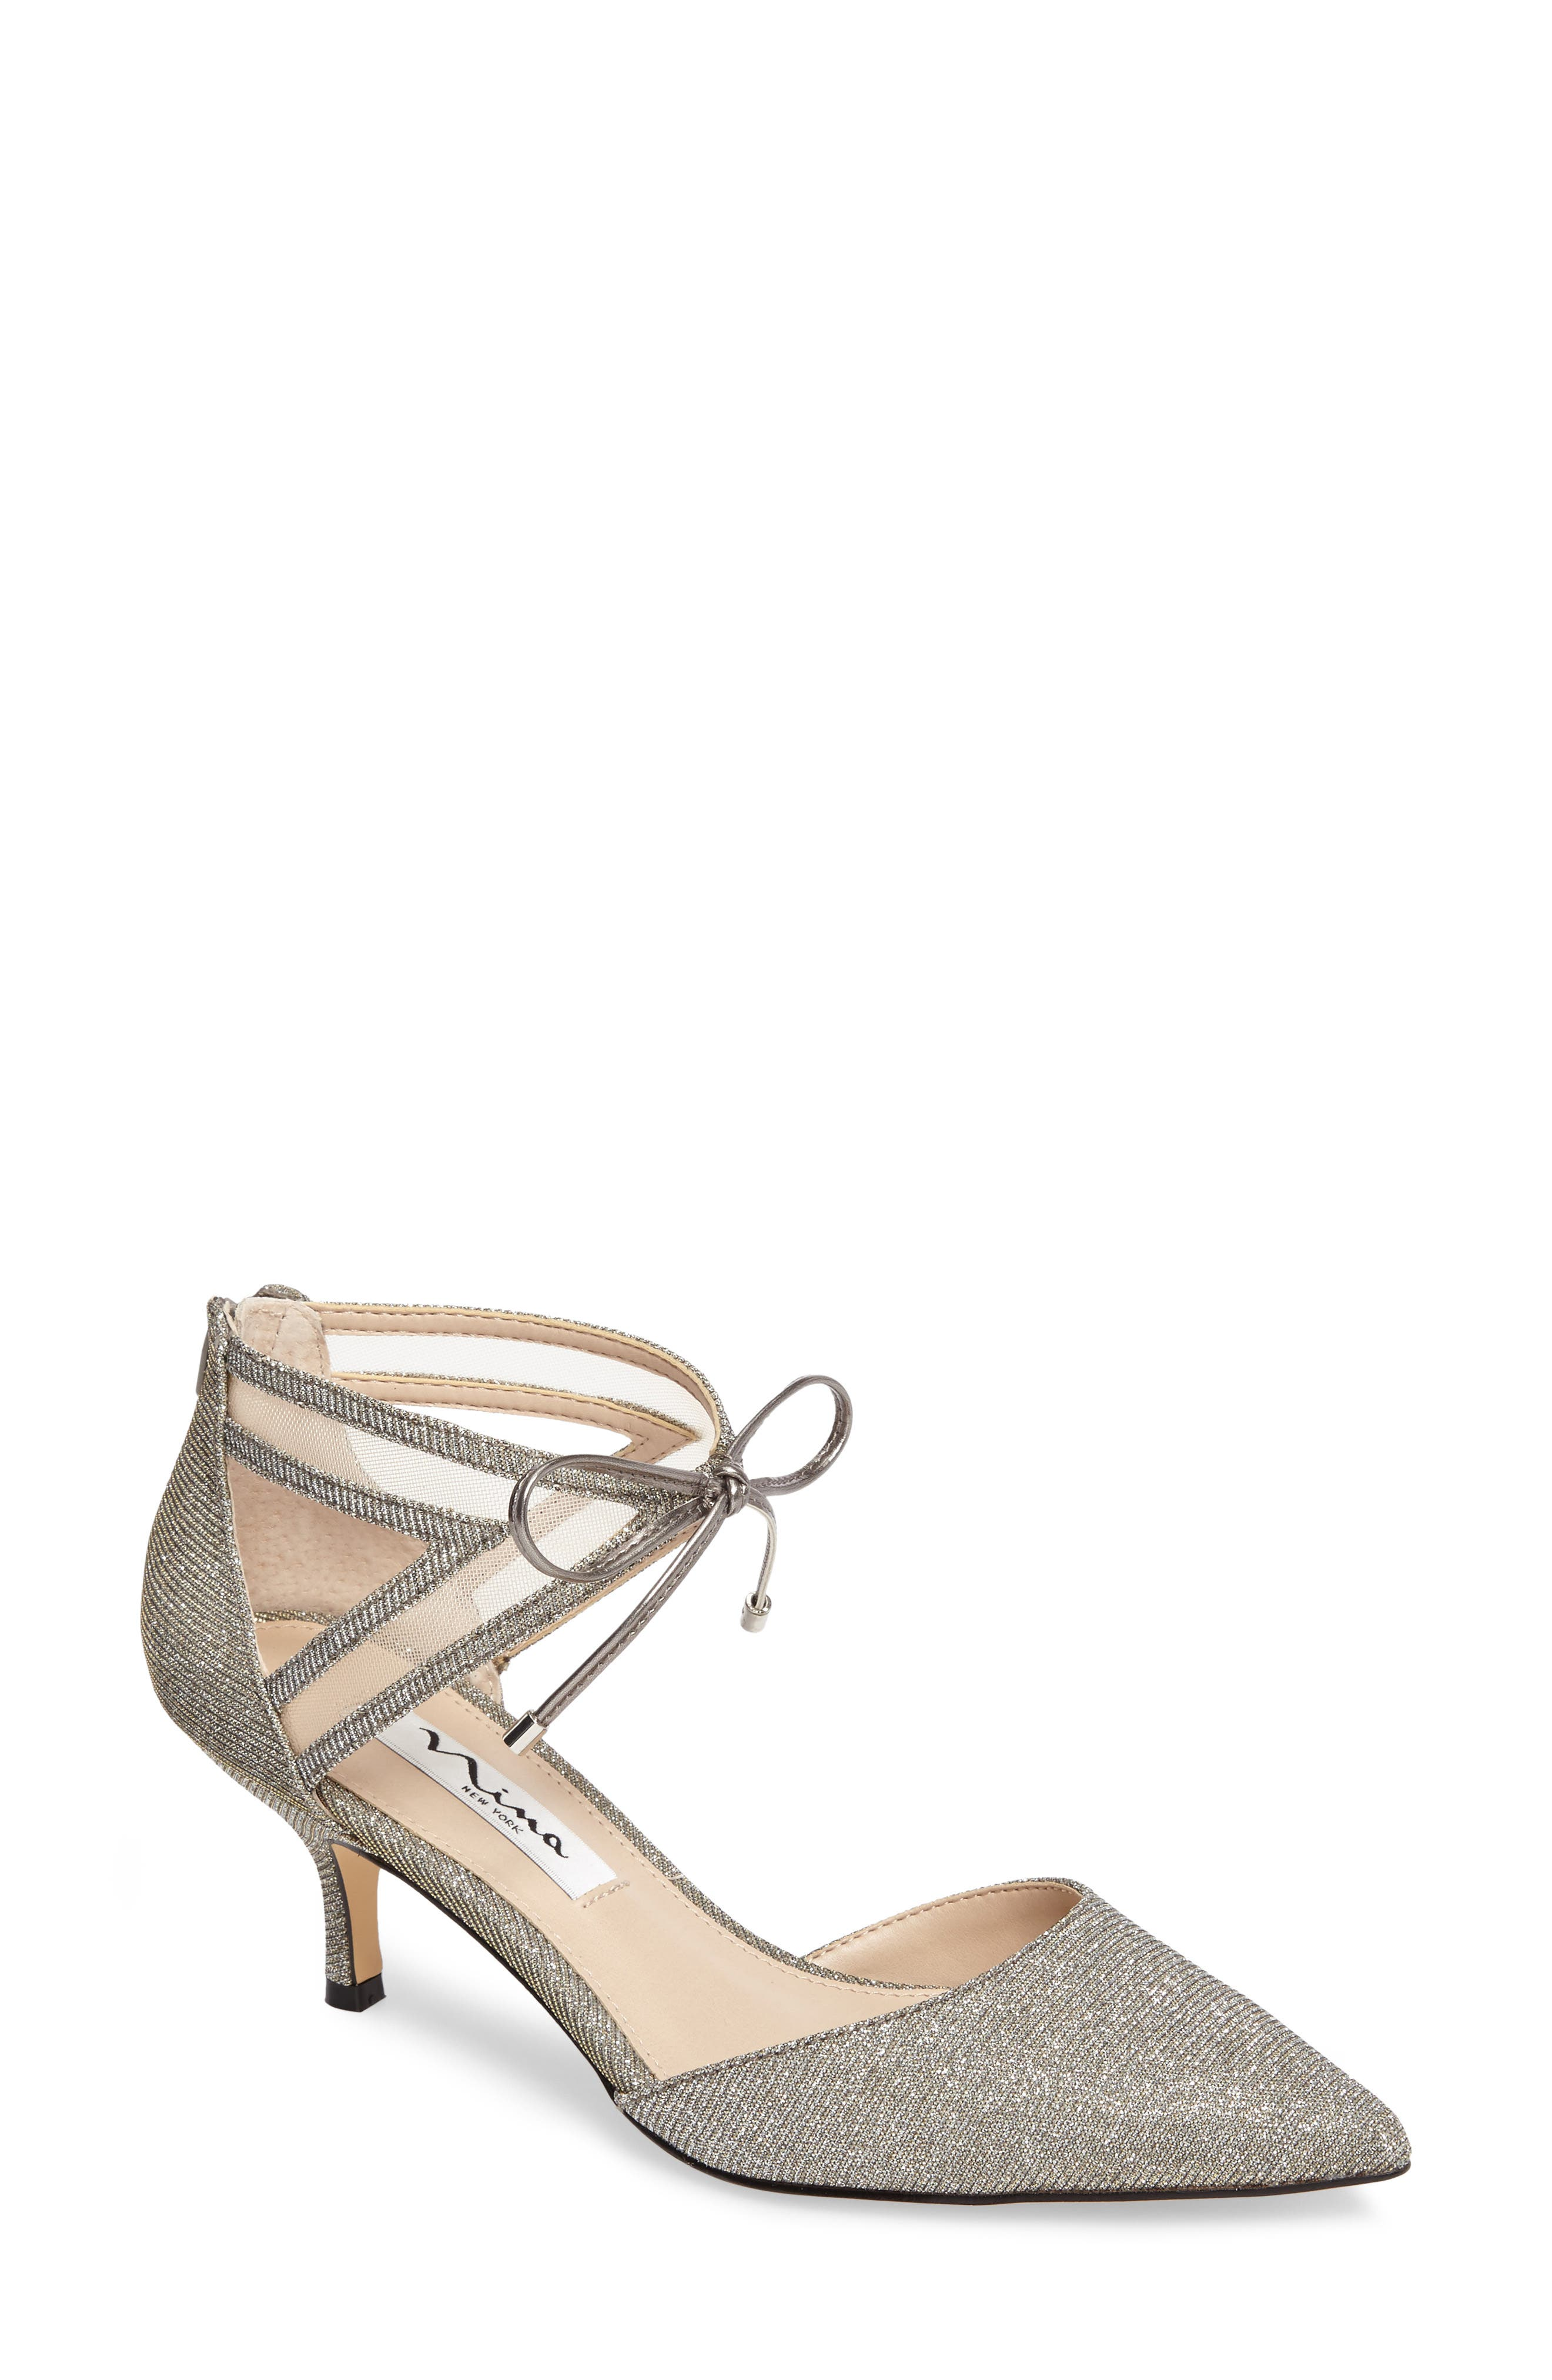 Talley Pointy Toe Pump,                         Main,                         color, Steel/ Champ Metallic Fabric